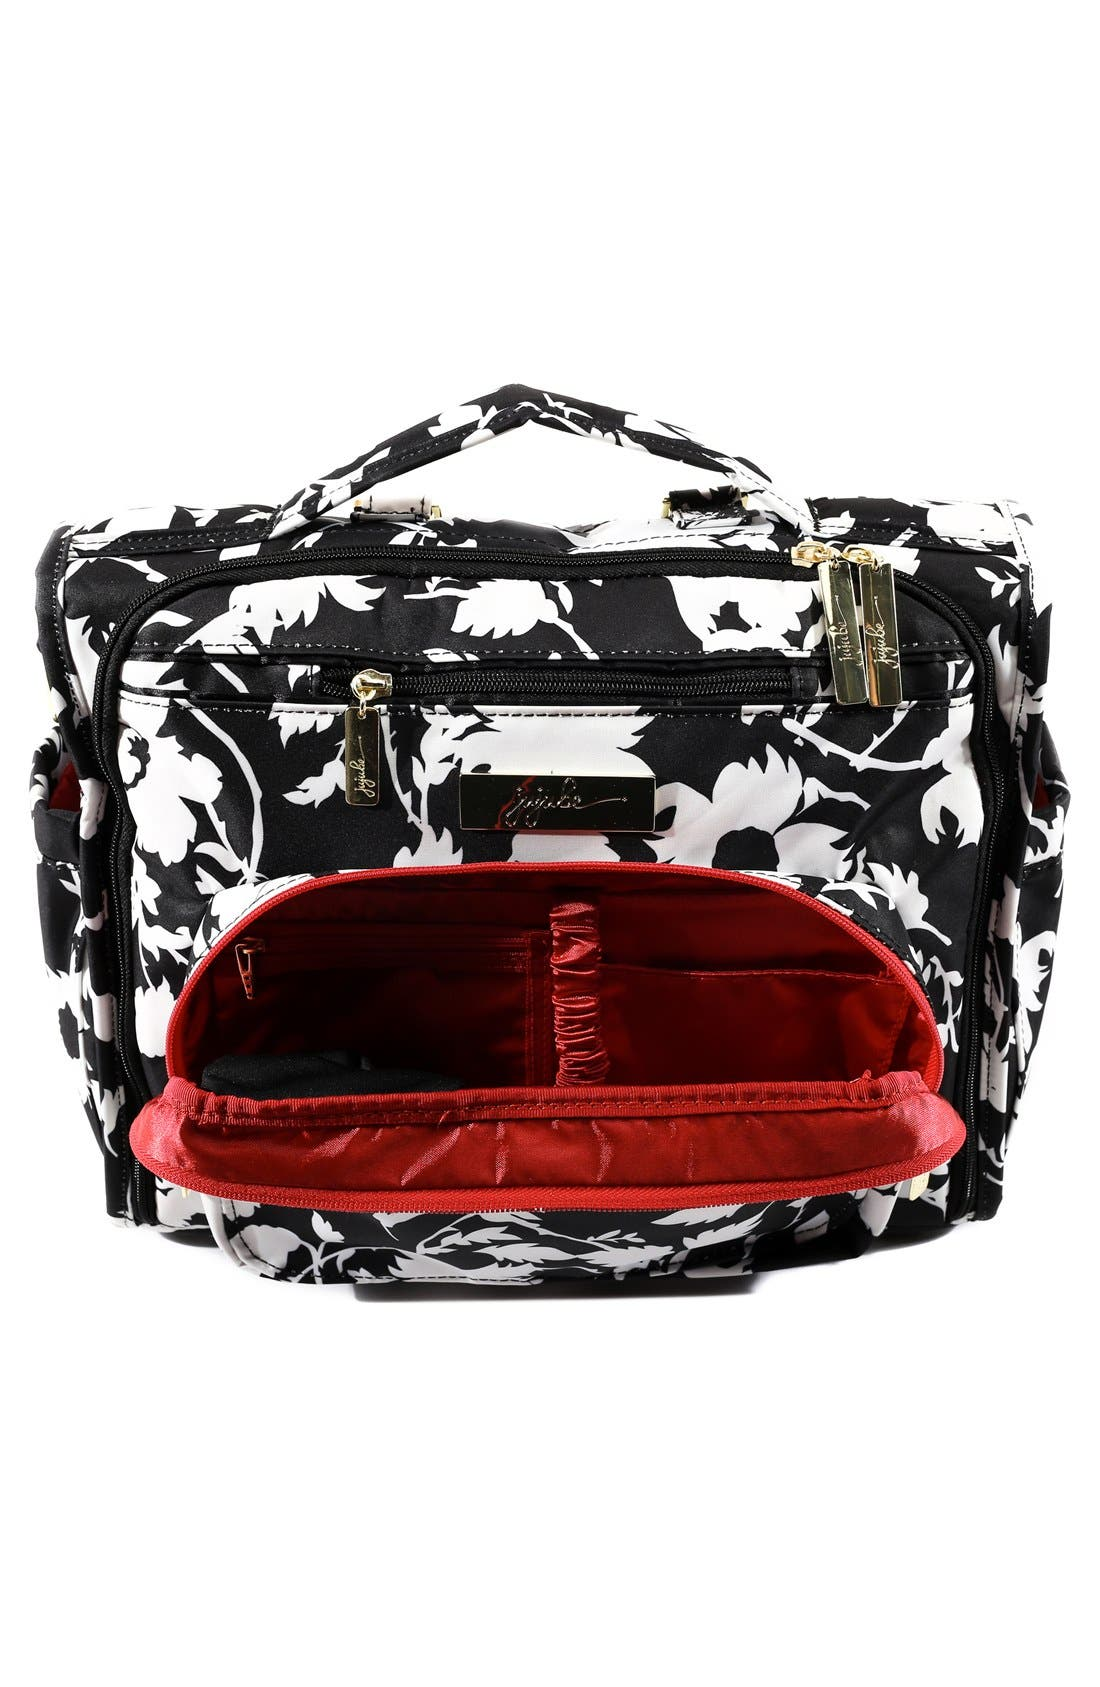 'Legacy BFF' Diaper Bag,                             Alternate thumbnail 5, color,                             The Imperial Princess